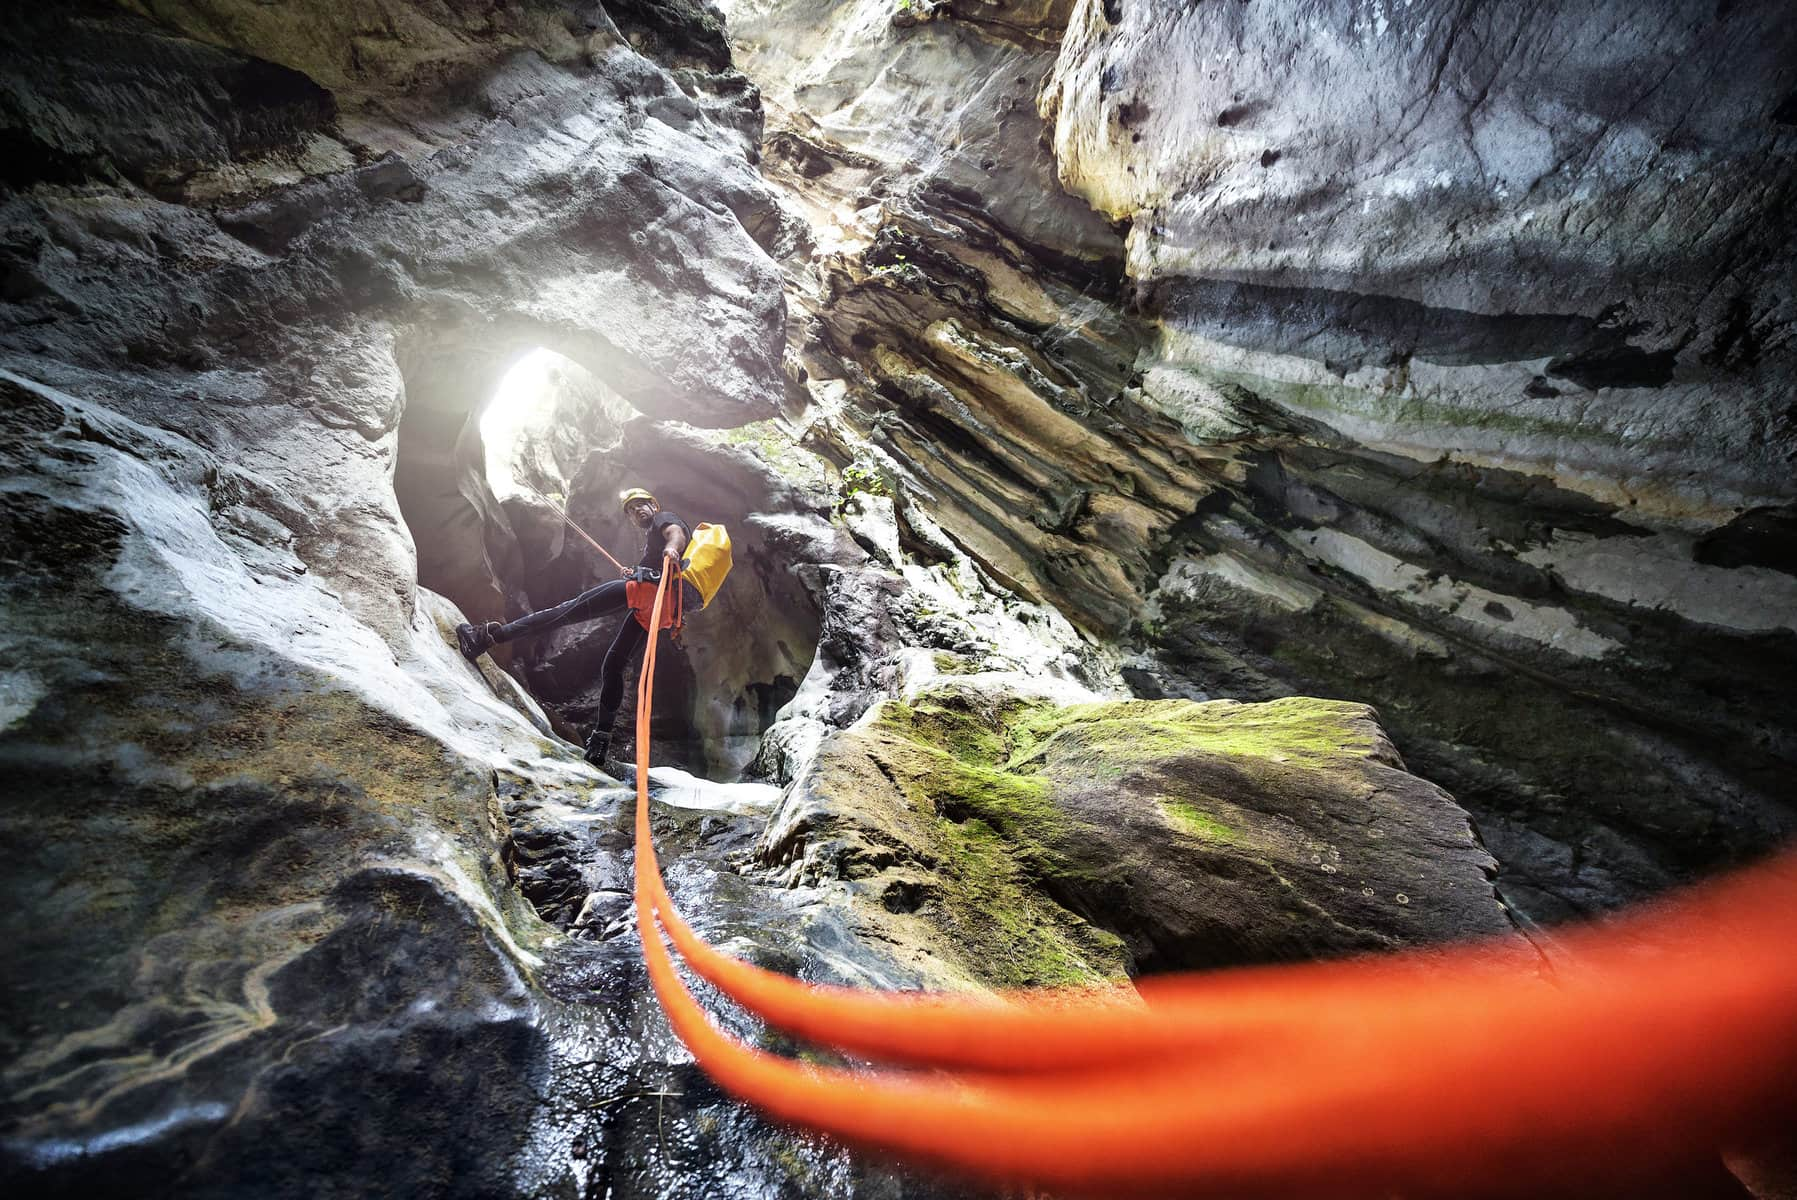 Cave climber secured by an orange rope sees sunlight